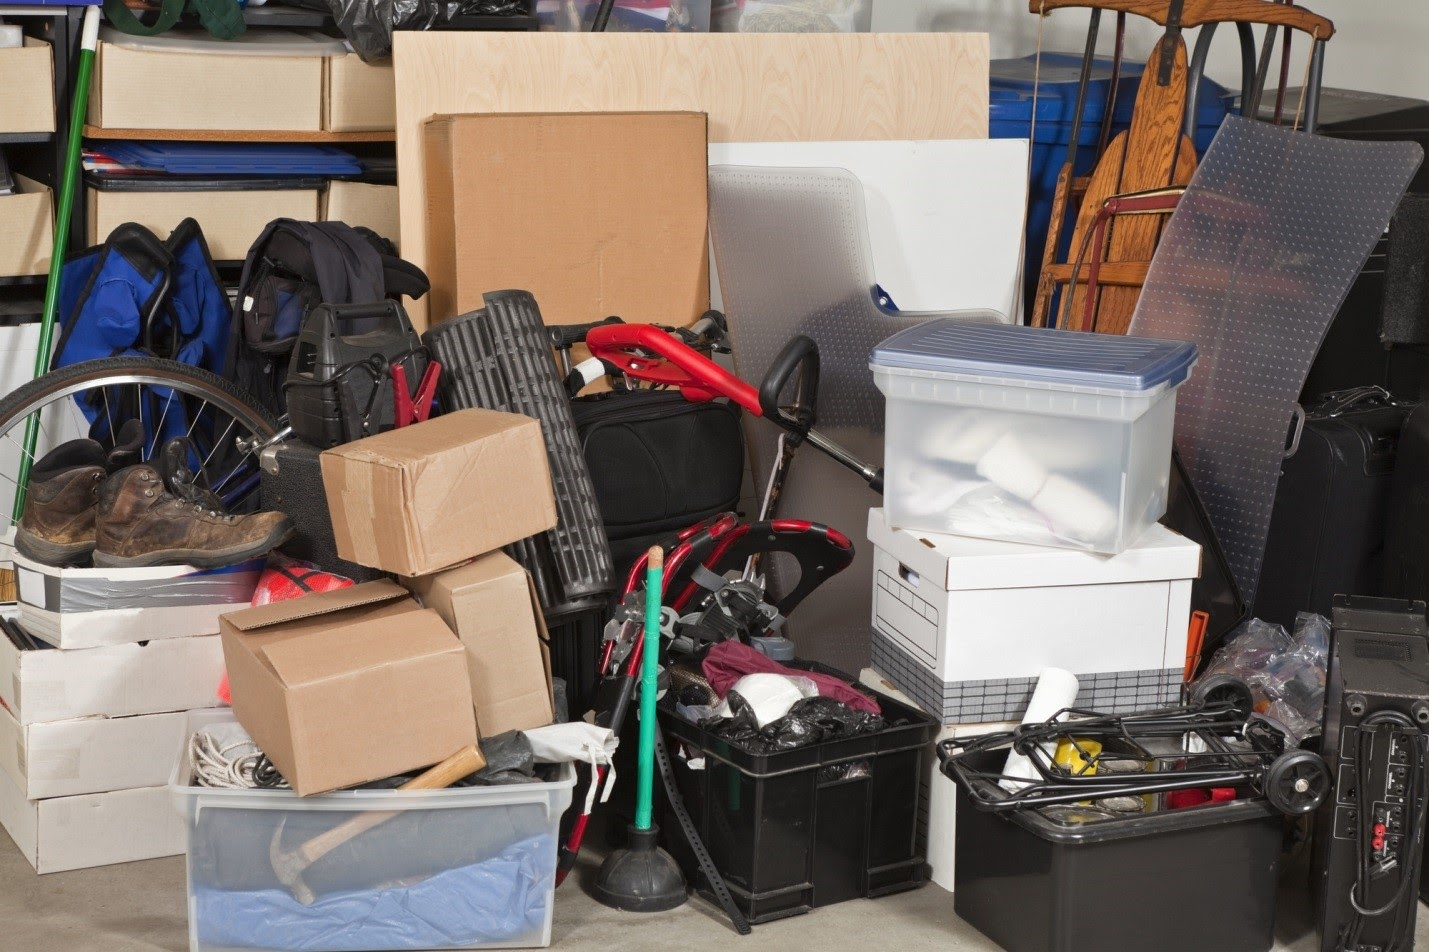 Clutter, including boxes and bins of items